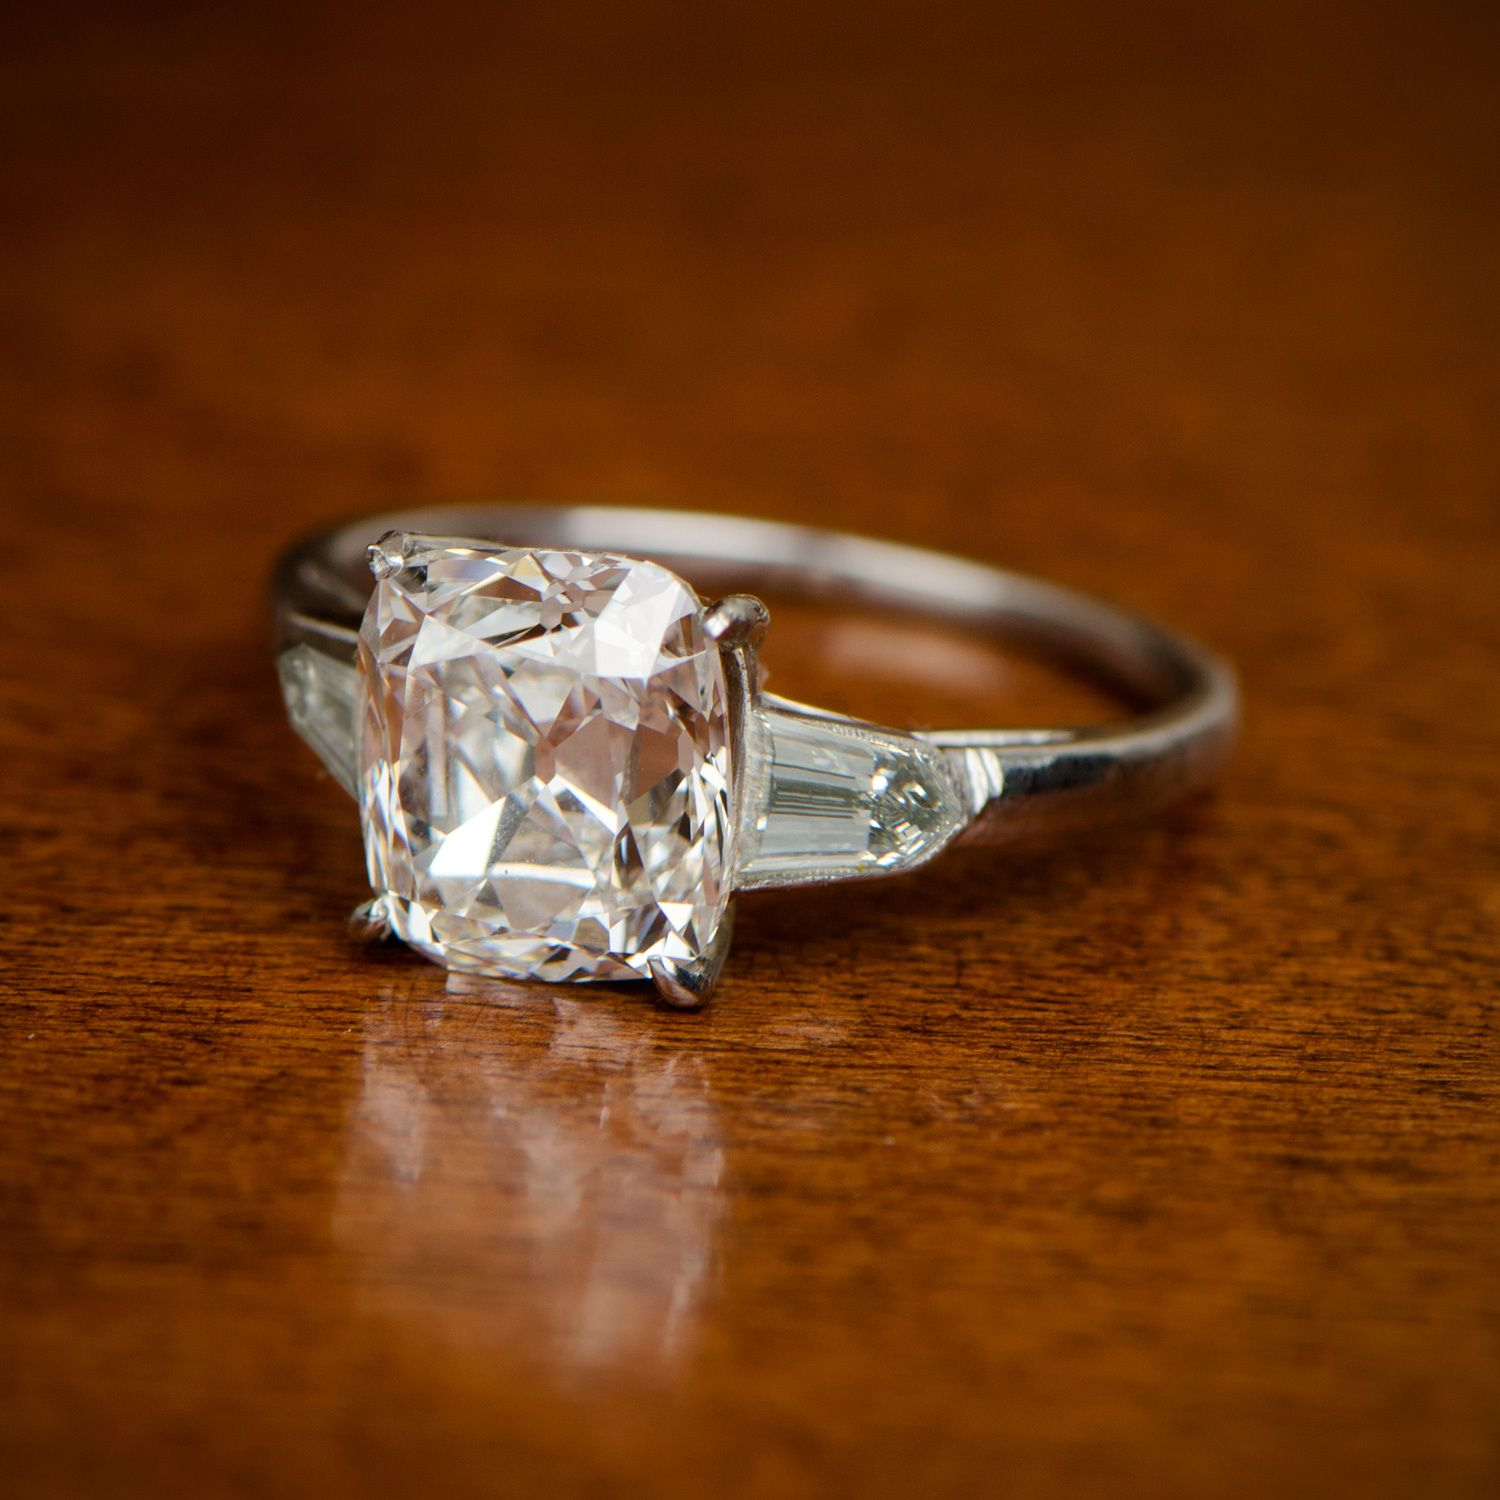 A Stunning Vintage 3 Carat Cushion Cut Diamond Engagement Ring, Adorned By  Lovely Bullet